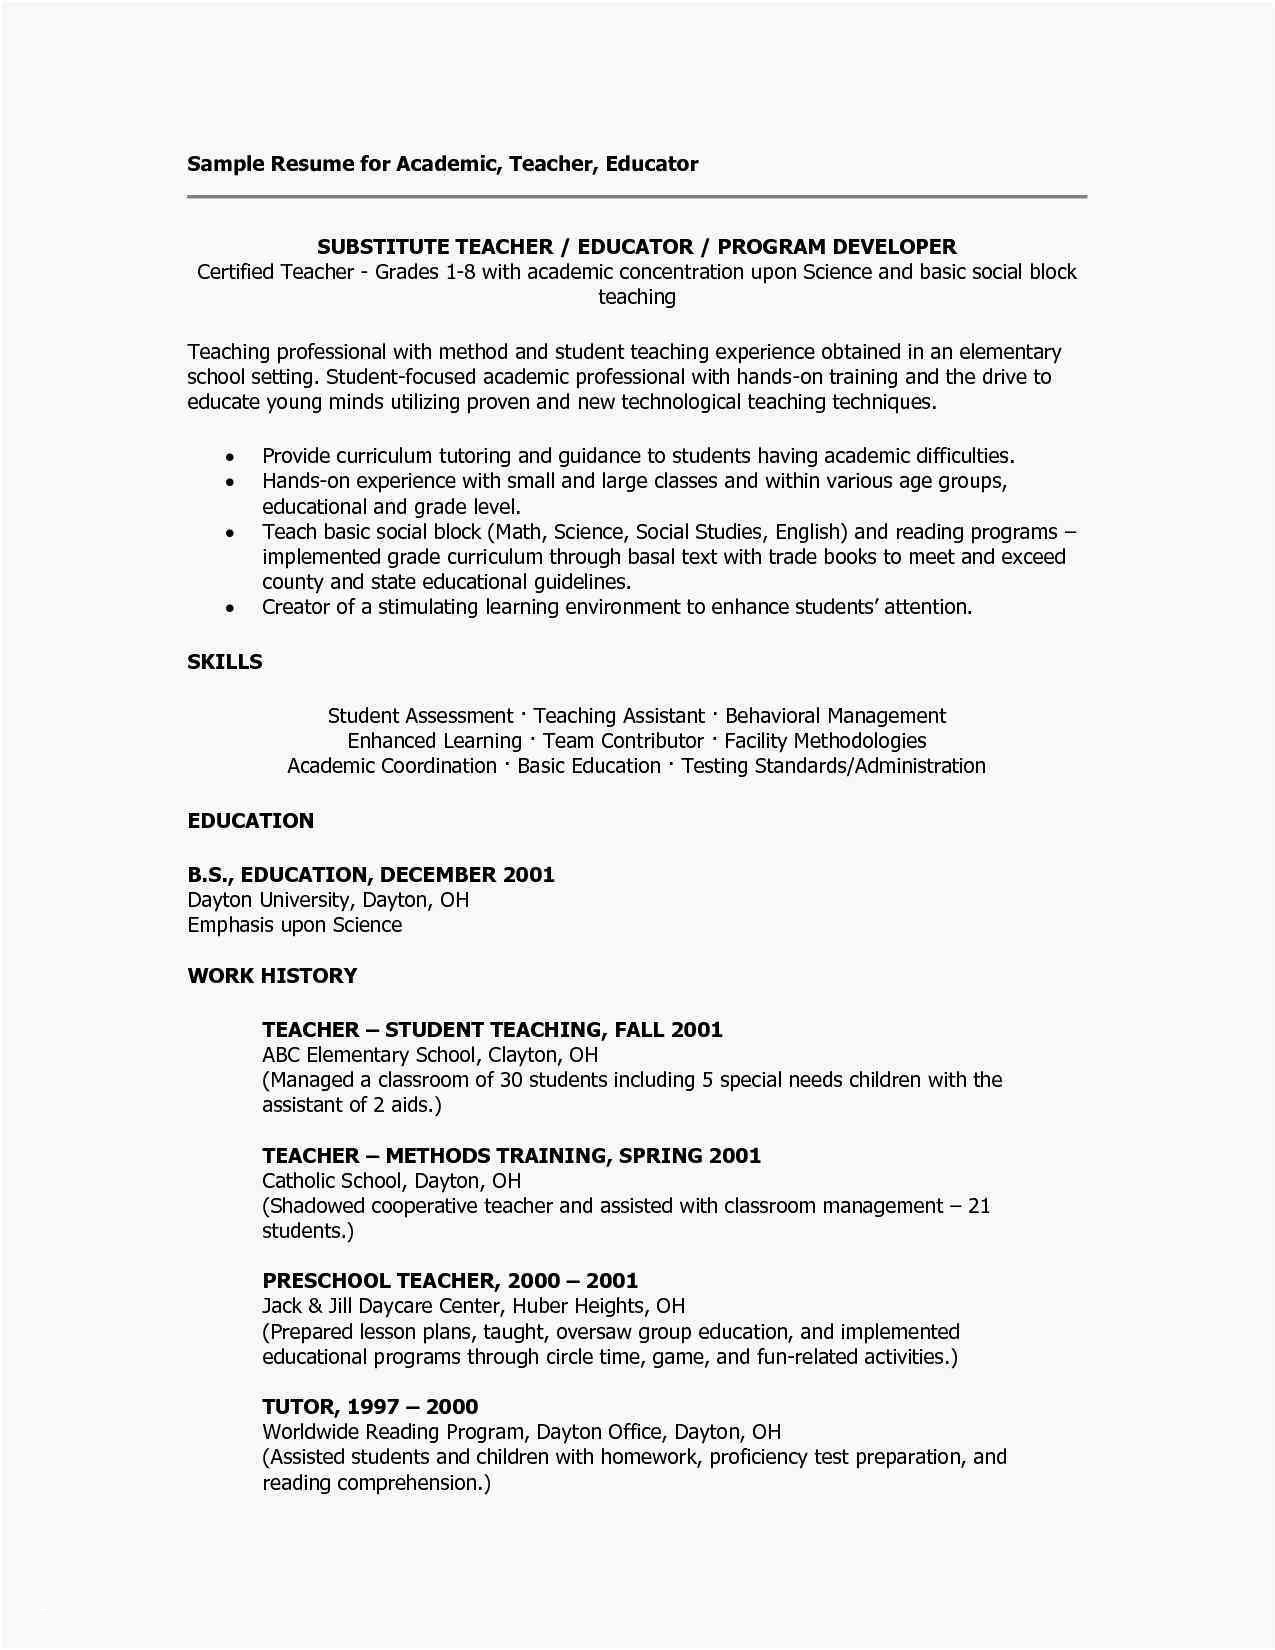 Swim Instructor Resume - New Teacher Resume Unique Teacher Resume Template Luxury Resume